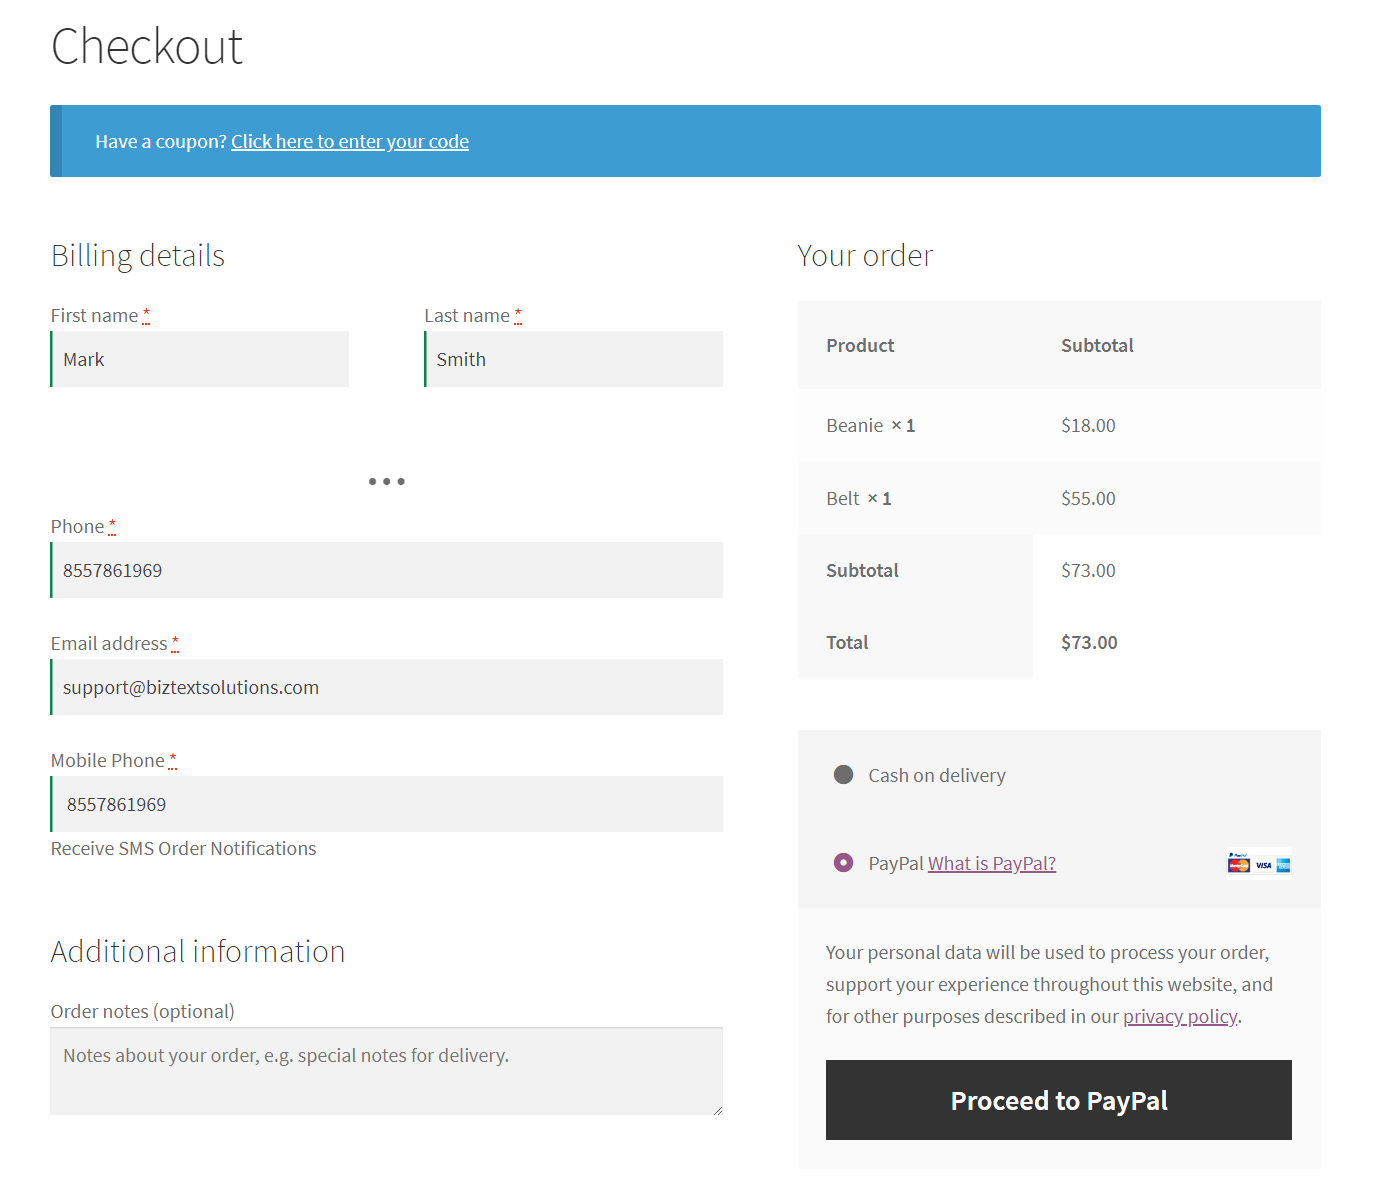 Screenshot for Checkout Page